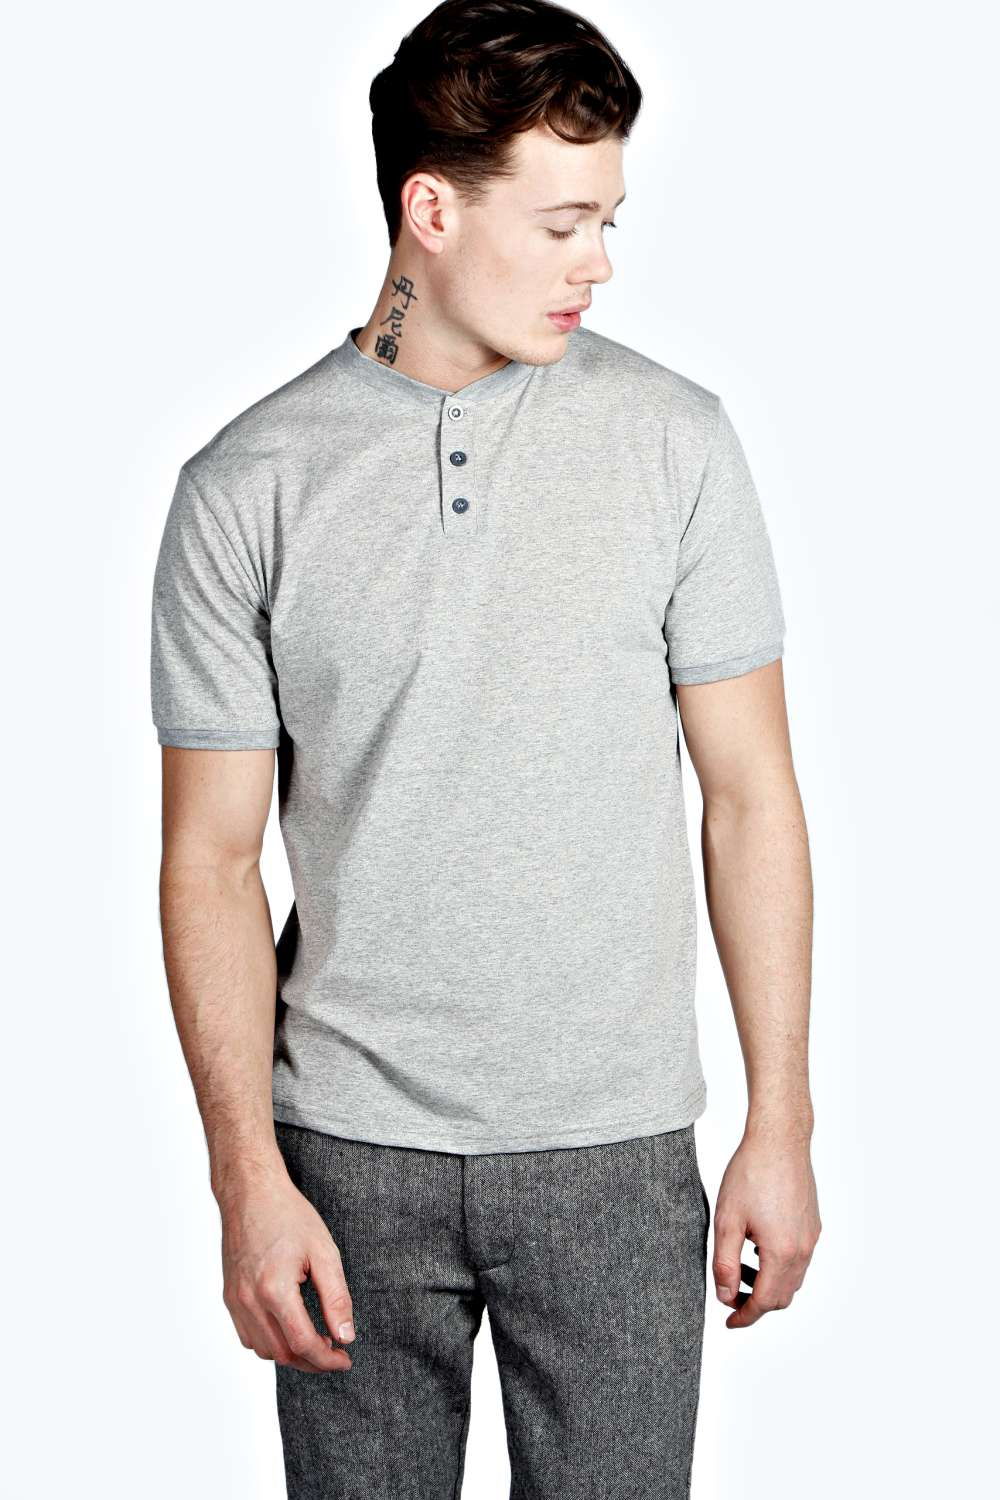 May 02,  · Some of our latest conquests include the best men's wardrobe basics, black t-shirt for men, jeans for men, white sneakers for men, and flattering clothes for men. We update links when possible, but note that deals can expire and all prices are subject to change. If you buy something through our links, New York may earn an affiliate commission.